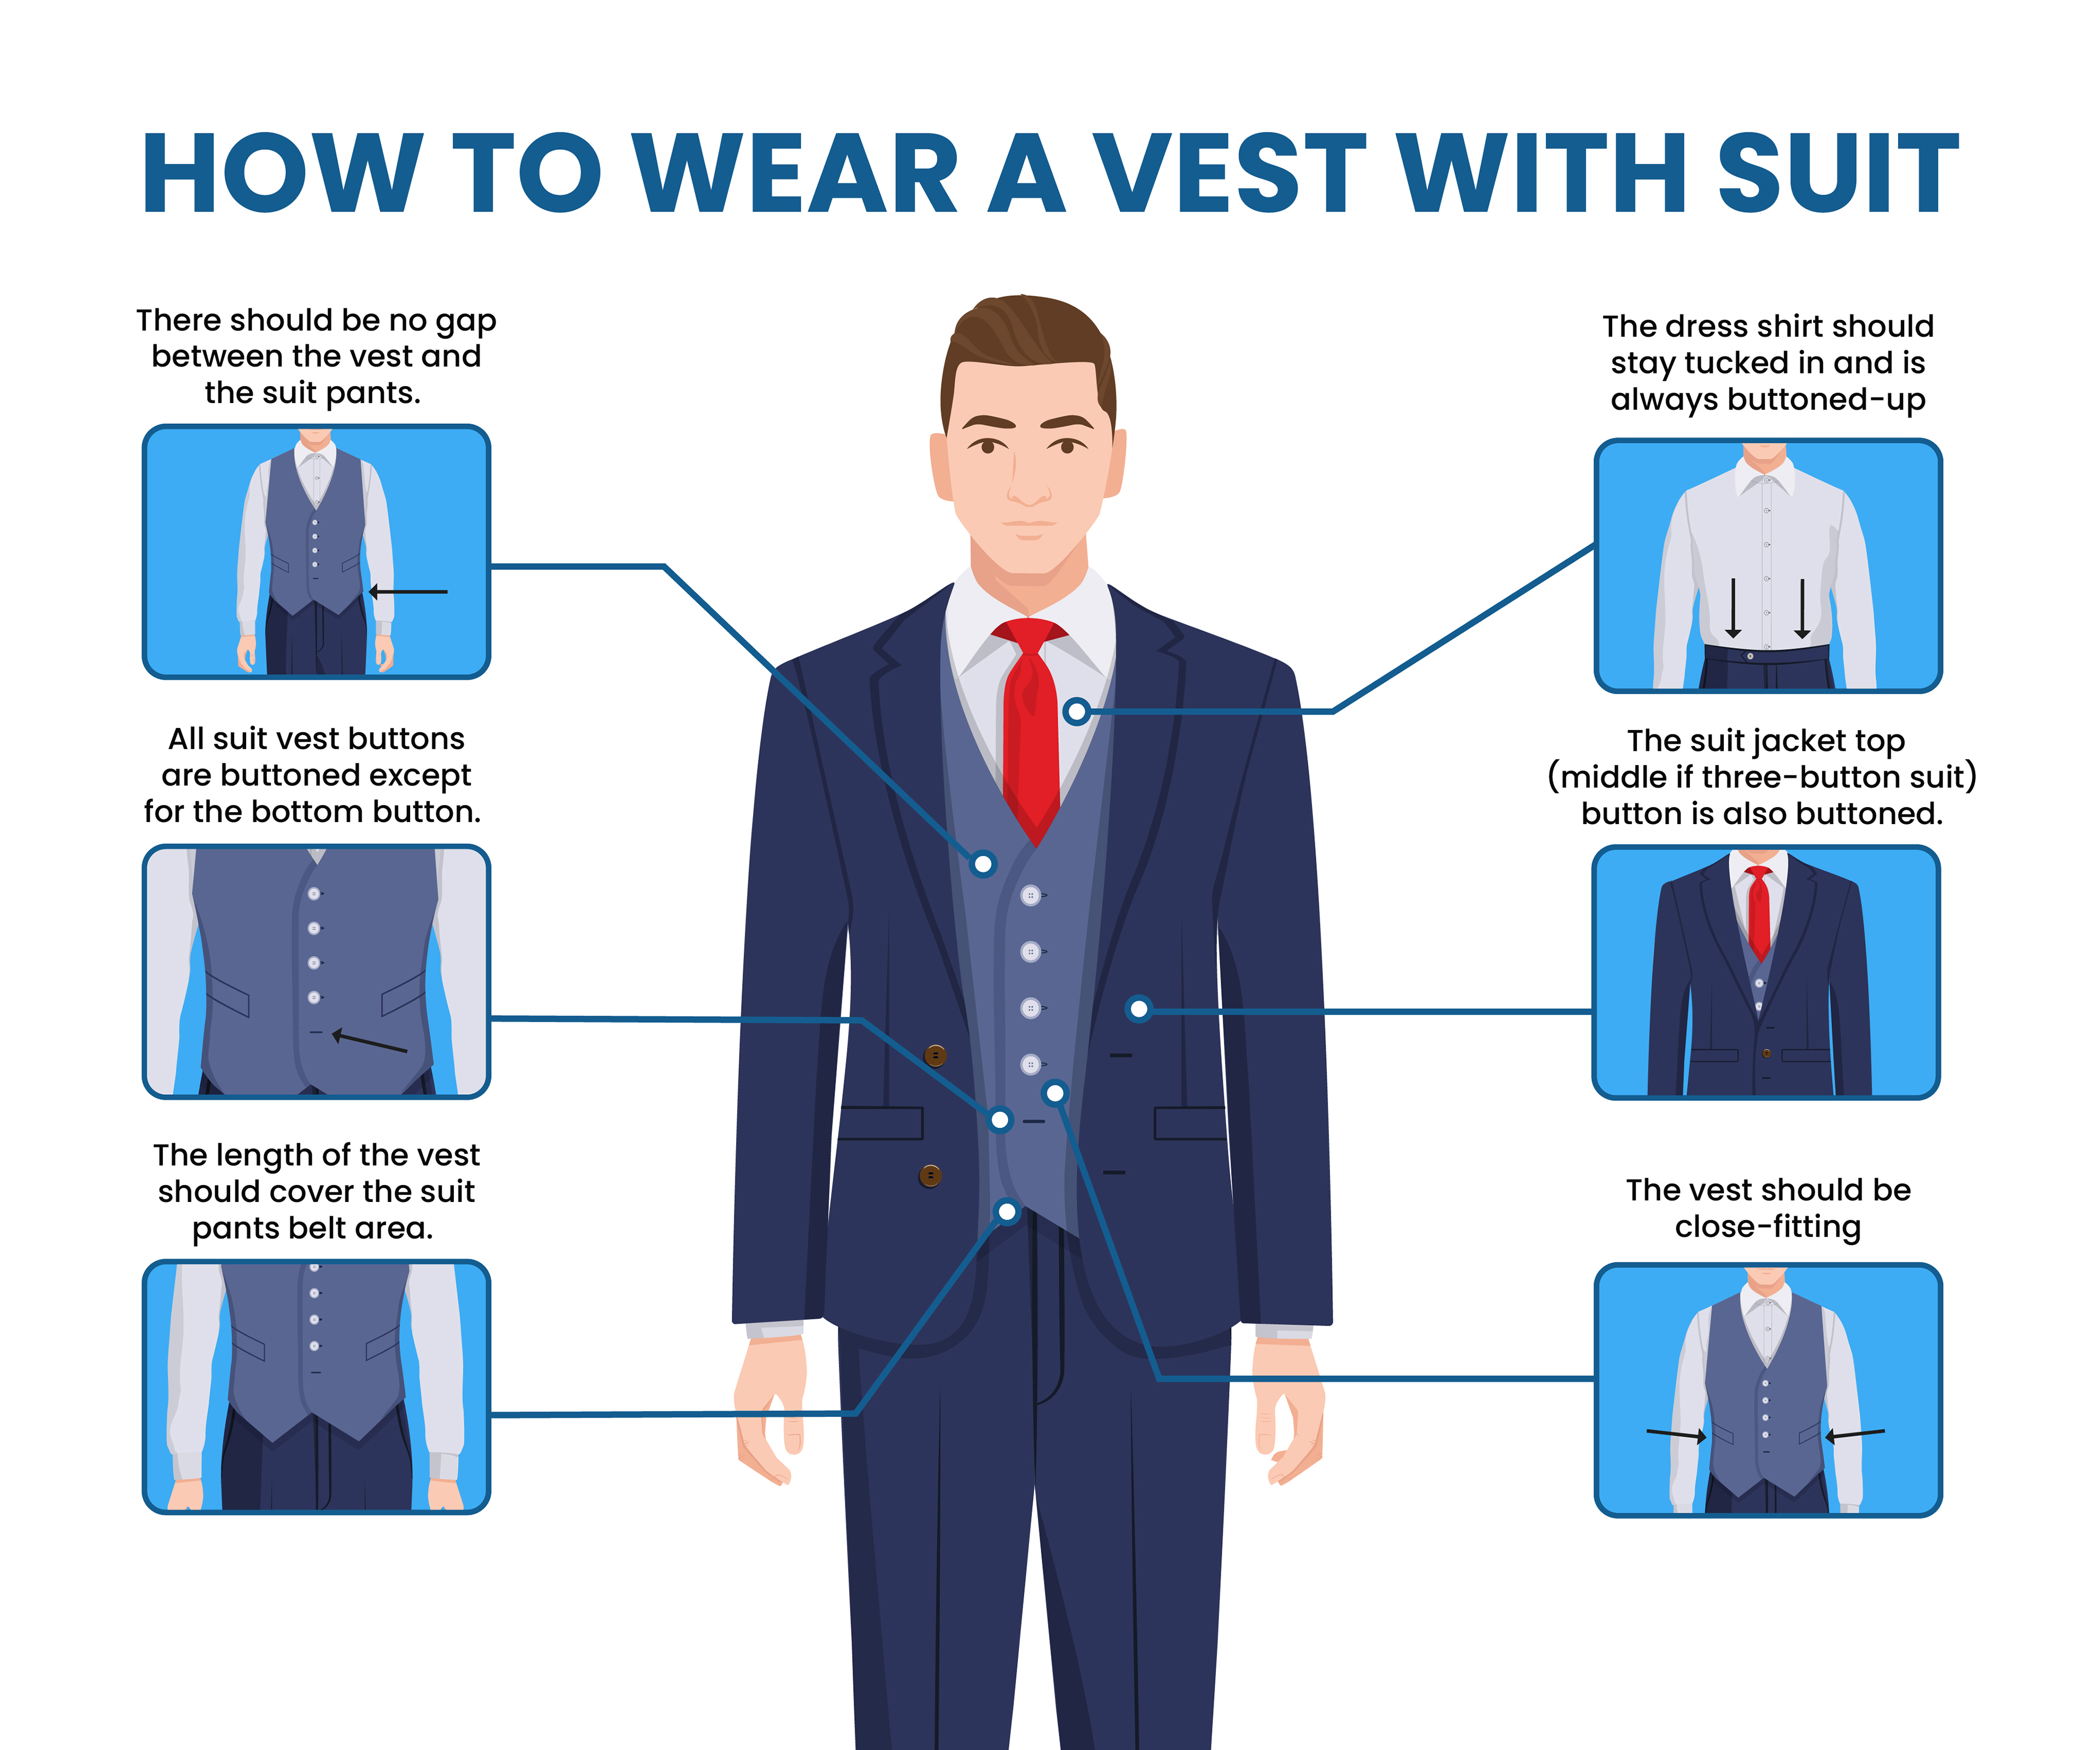 how to wear a vest with suit